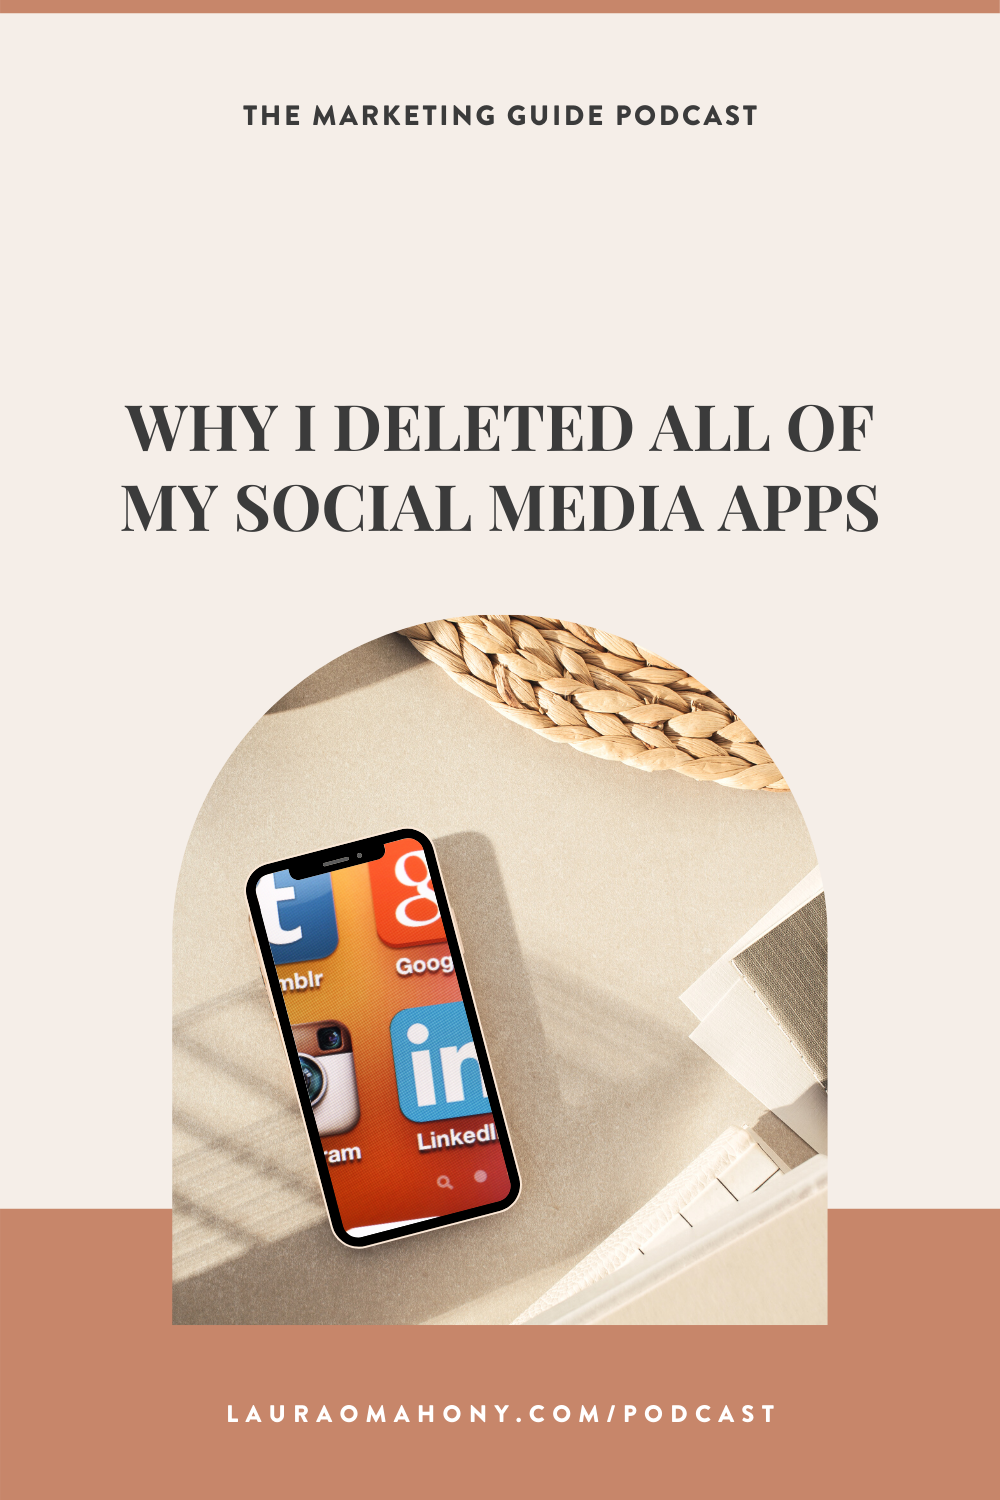 The Marketing Guide Episode 59 Why I Deleted All Of My Social Media Apps